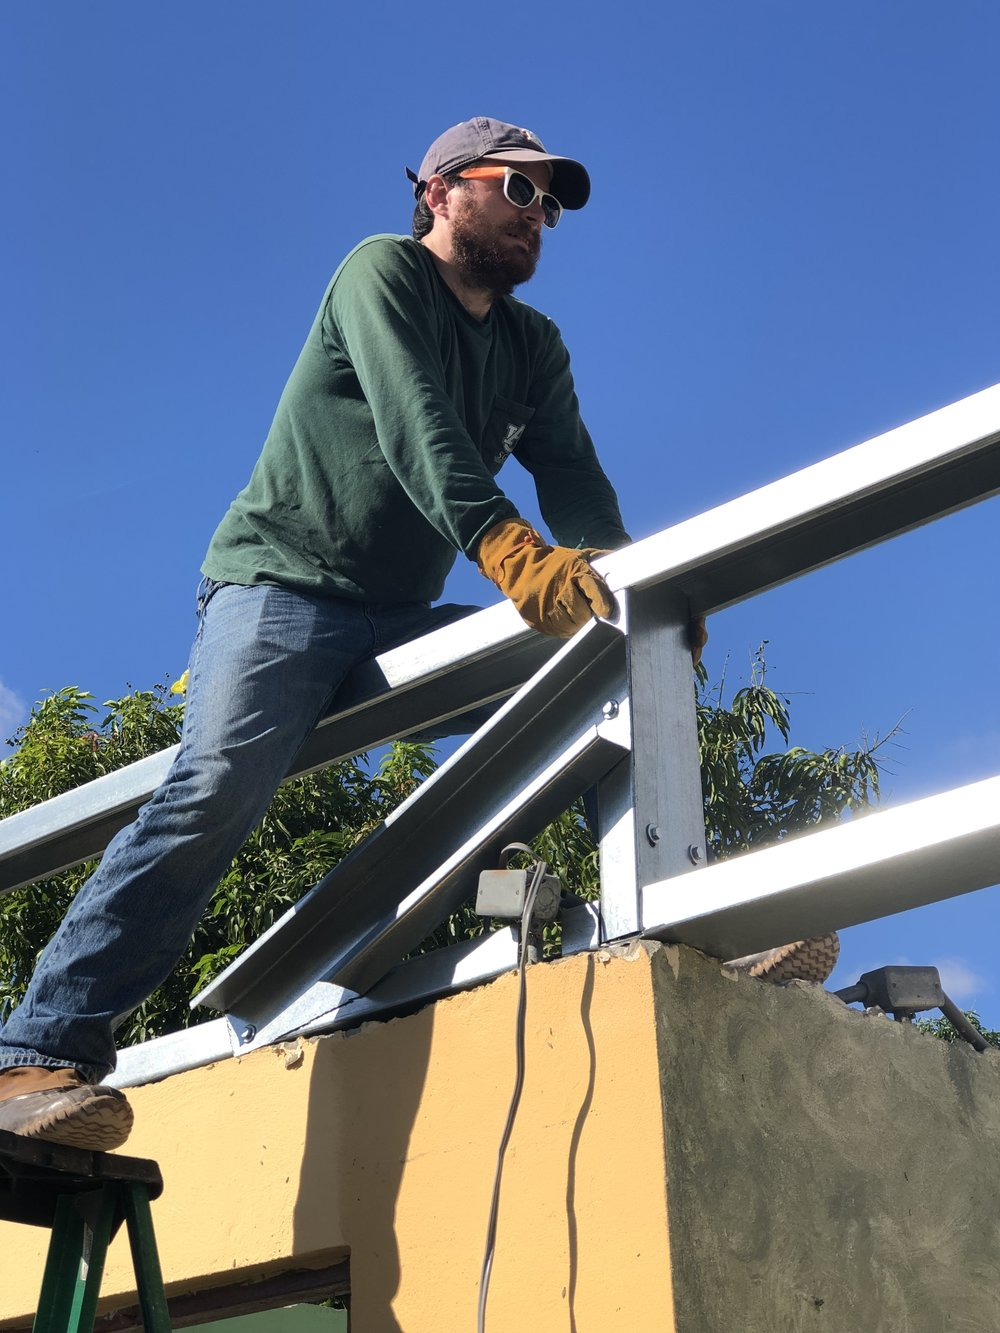 JT Mercer from Team 1 is shown here braving the highest part of a roof on the second story to hold down the support beams for what will be a new metal roof.